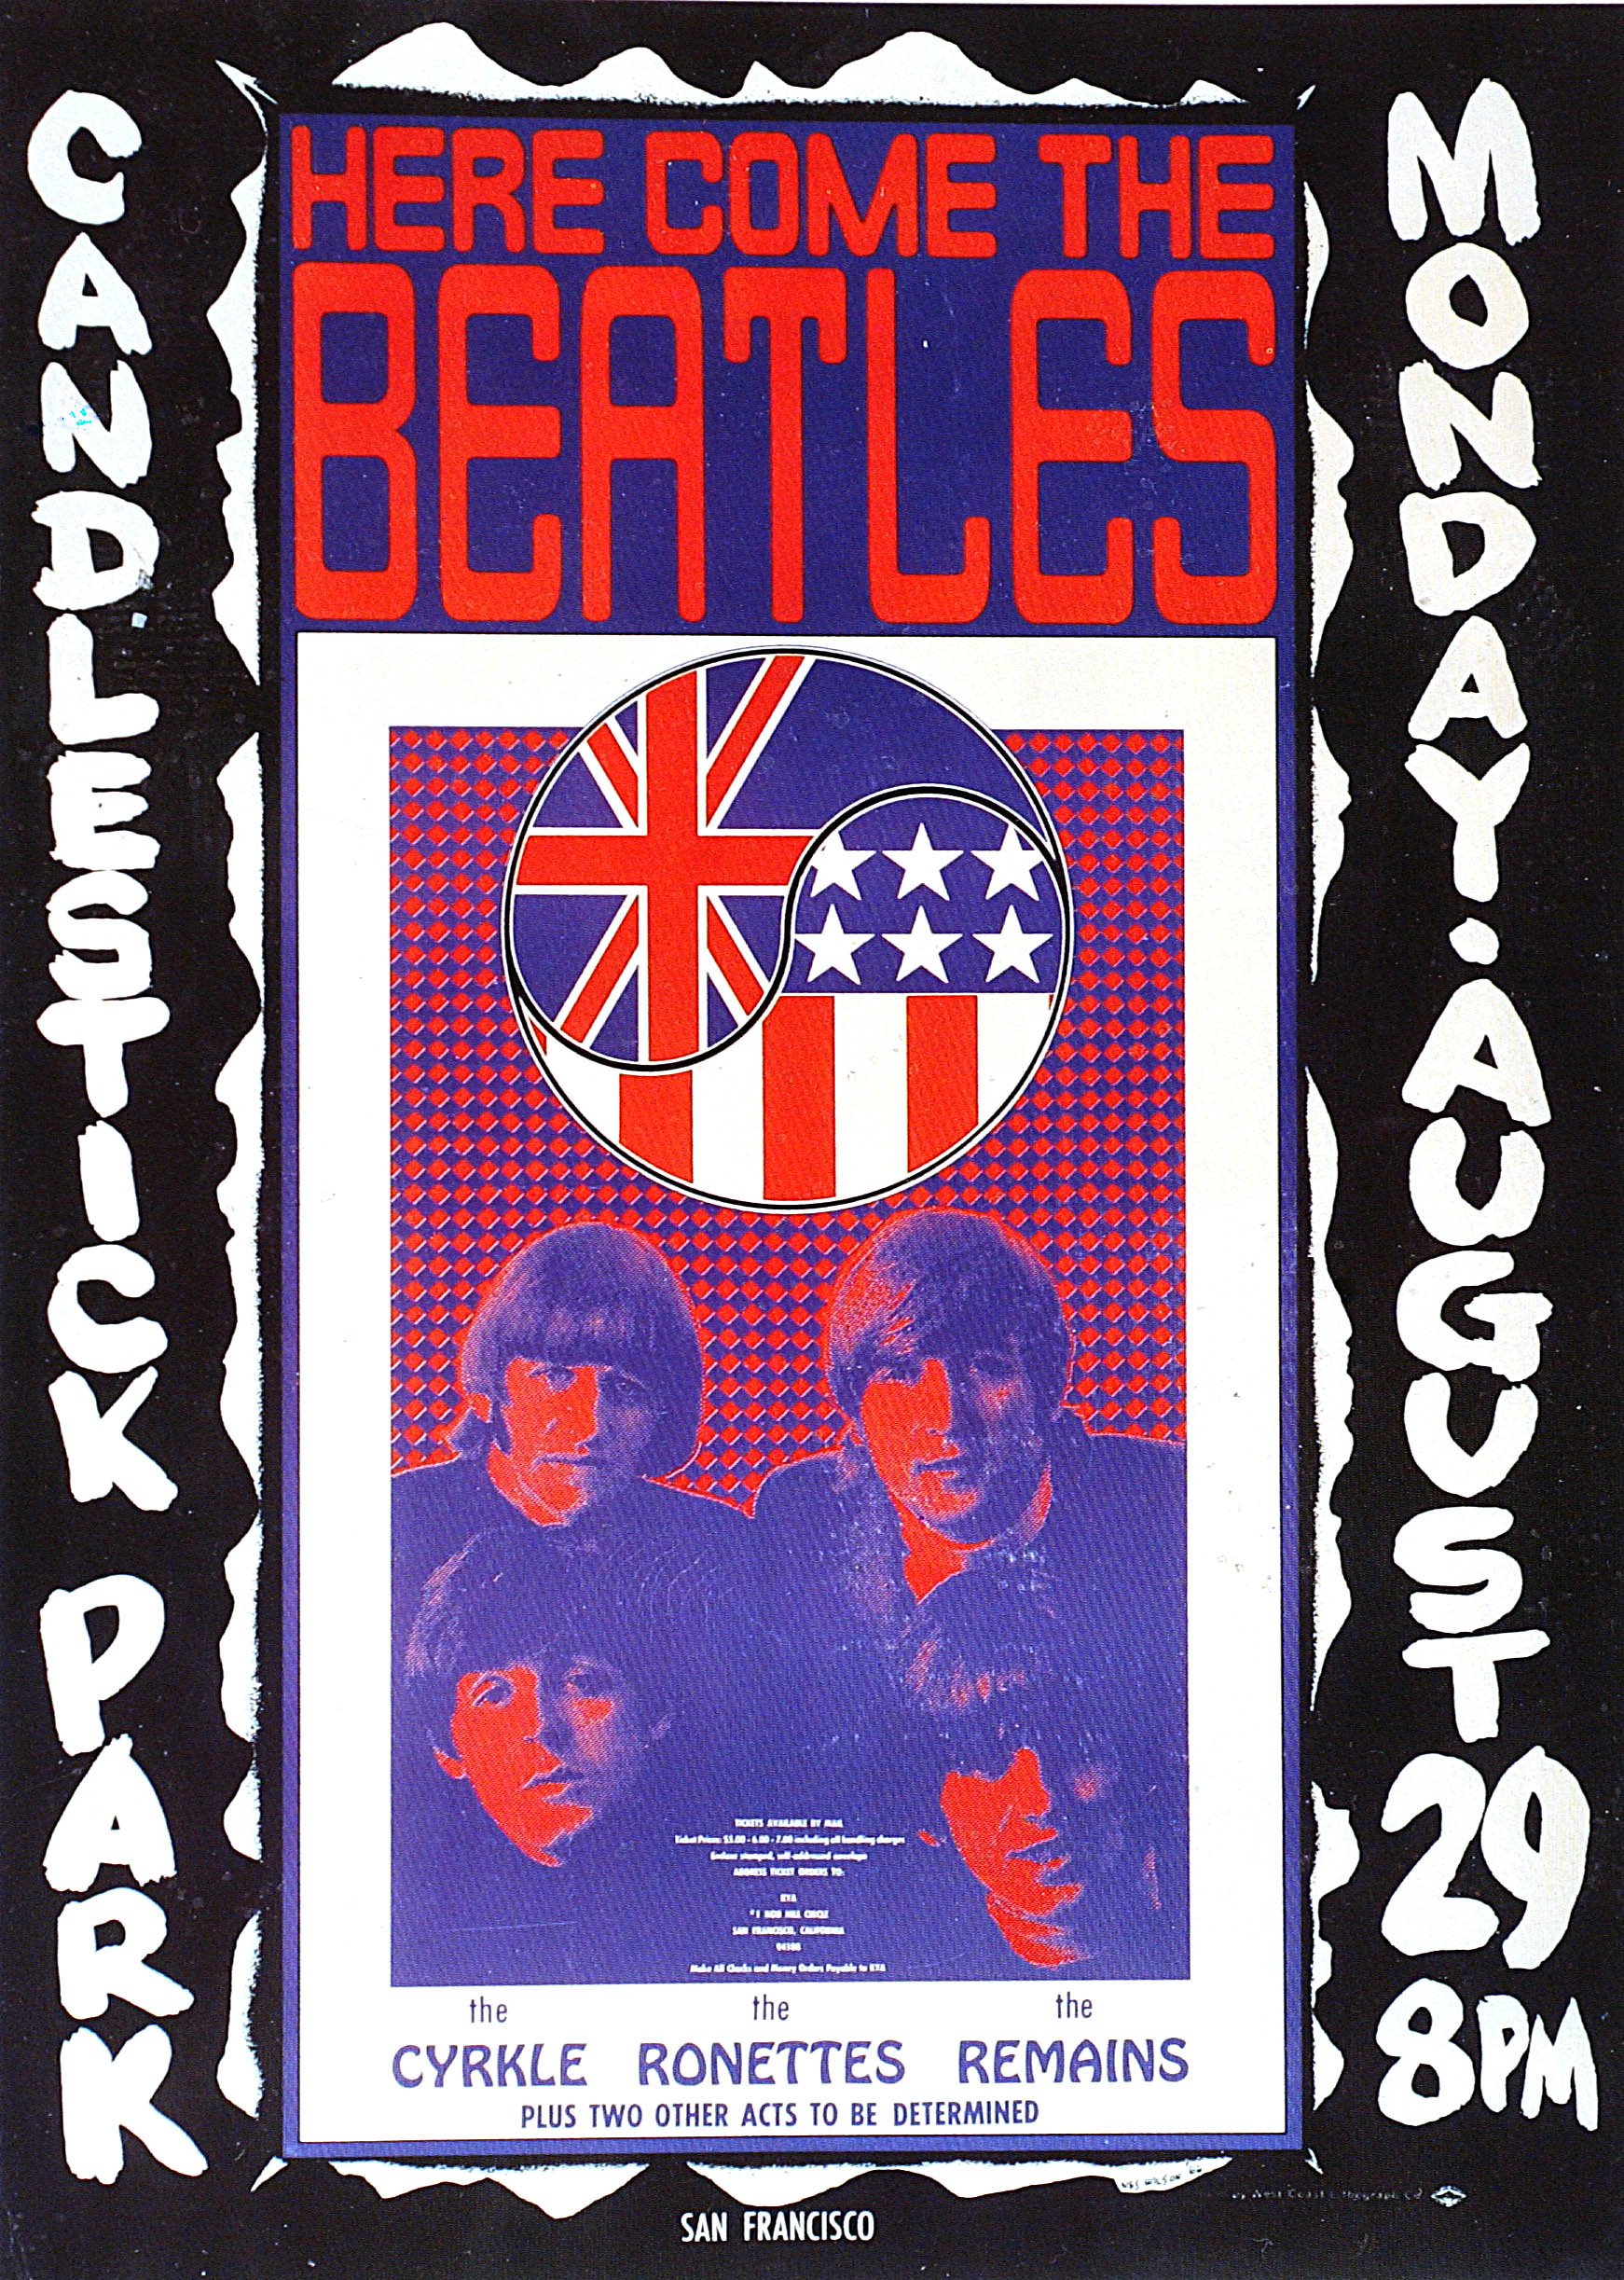 Photo Of Memorabilia BEATLES And CONCERT POSTERS And BEATLES